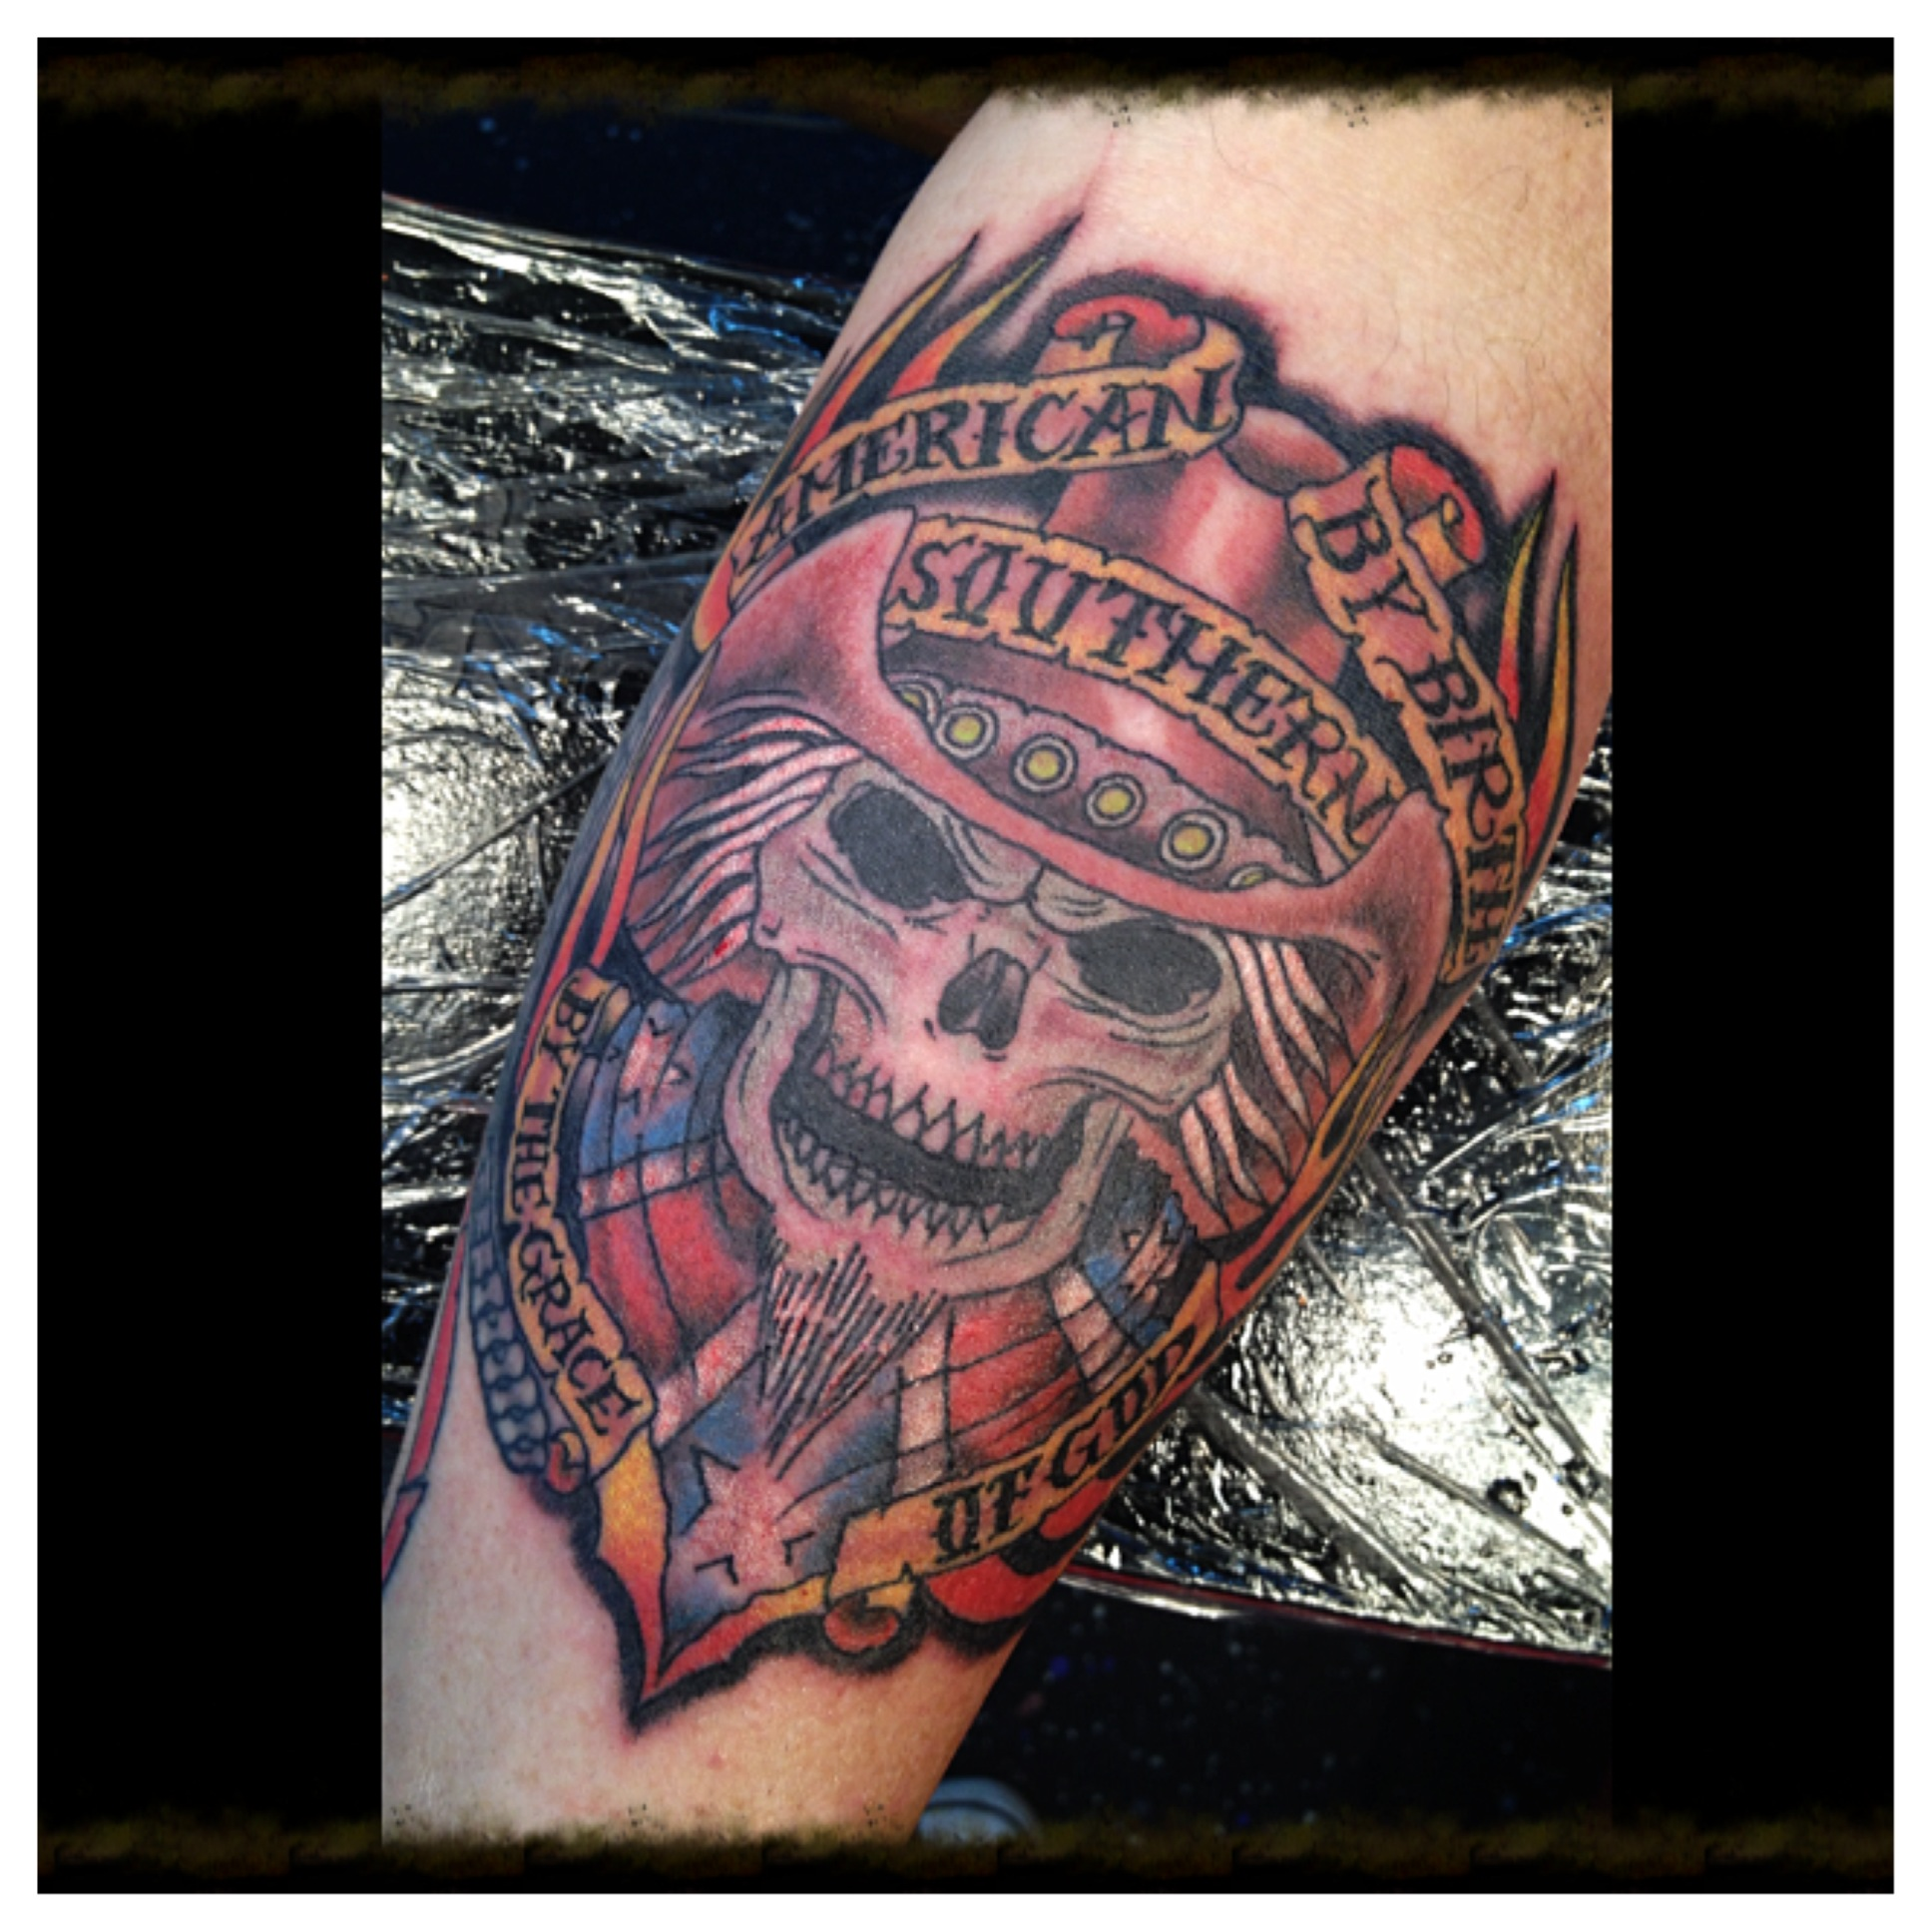 Country Boy Tattoo Pictures to Pin on Pinterest - TattoosKid